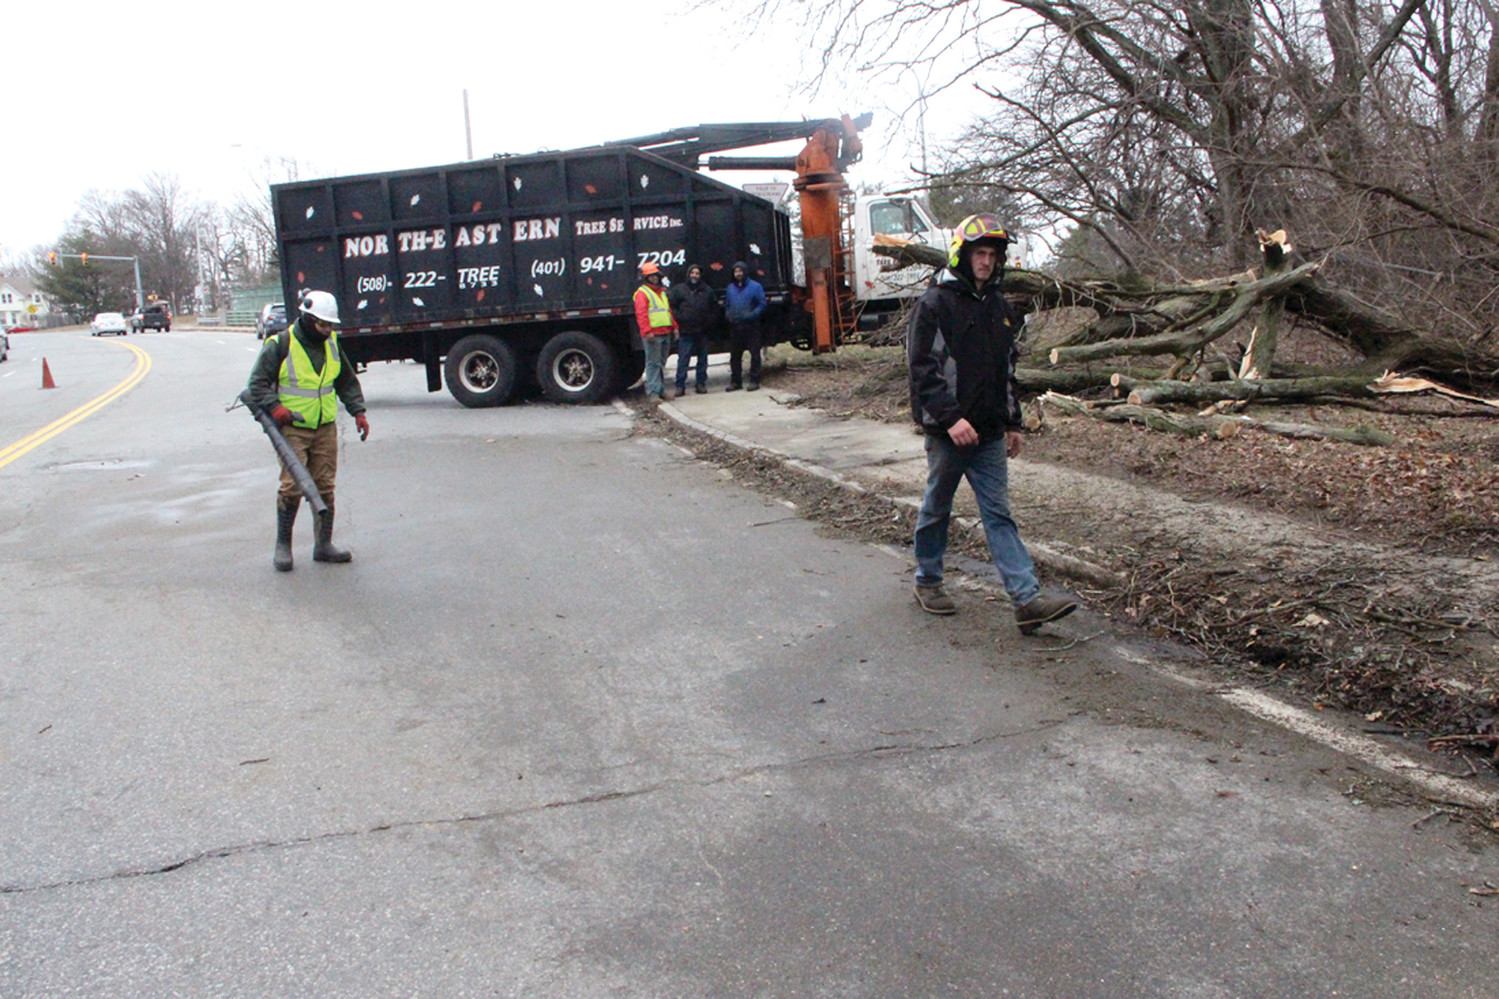 FAST WORK: A Northeaster Tree Service crew had two-way traffic restored to Park Avenue by Saturday morning. after clearing a downed tree  at the on ramp to the Route 10 connector.